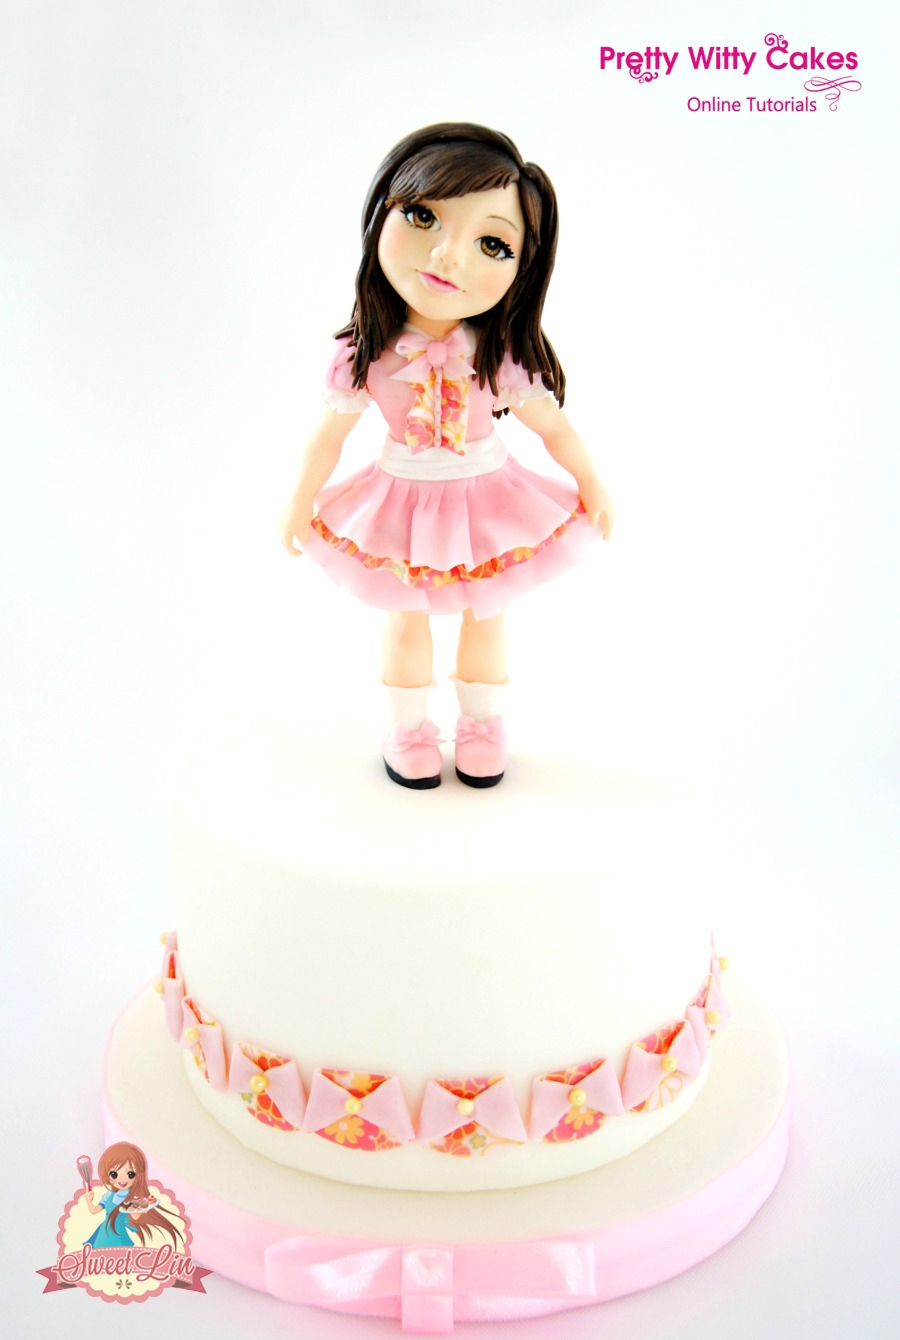 Momoka - Standing Girl I made this cake for Pretty Witty Cakes projects. Beside fondant, I played with wafer paper too